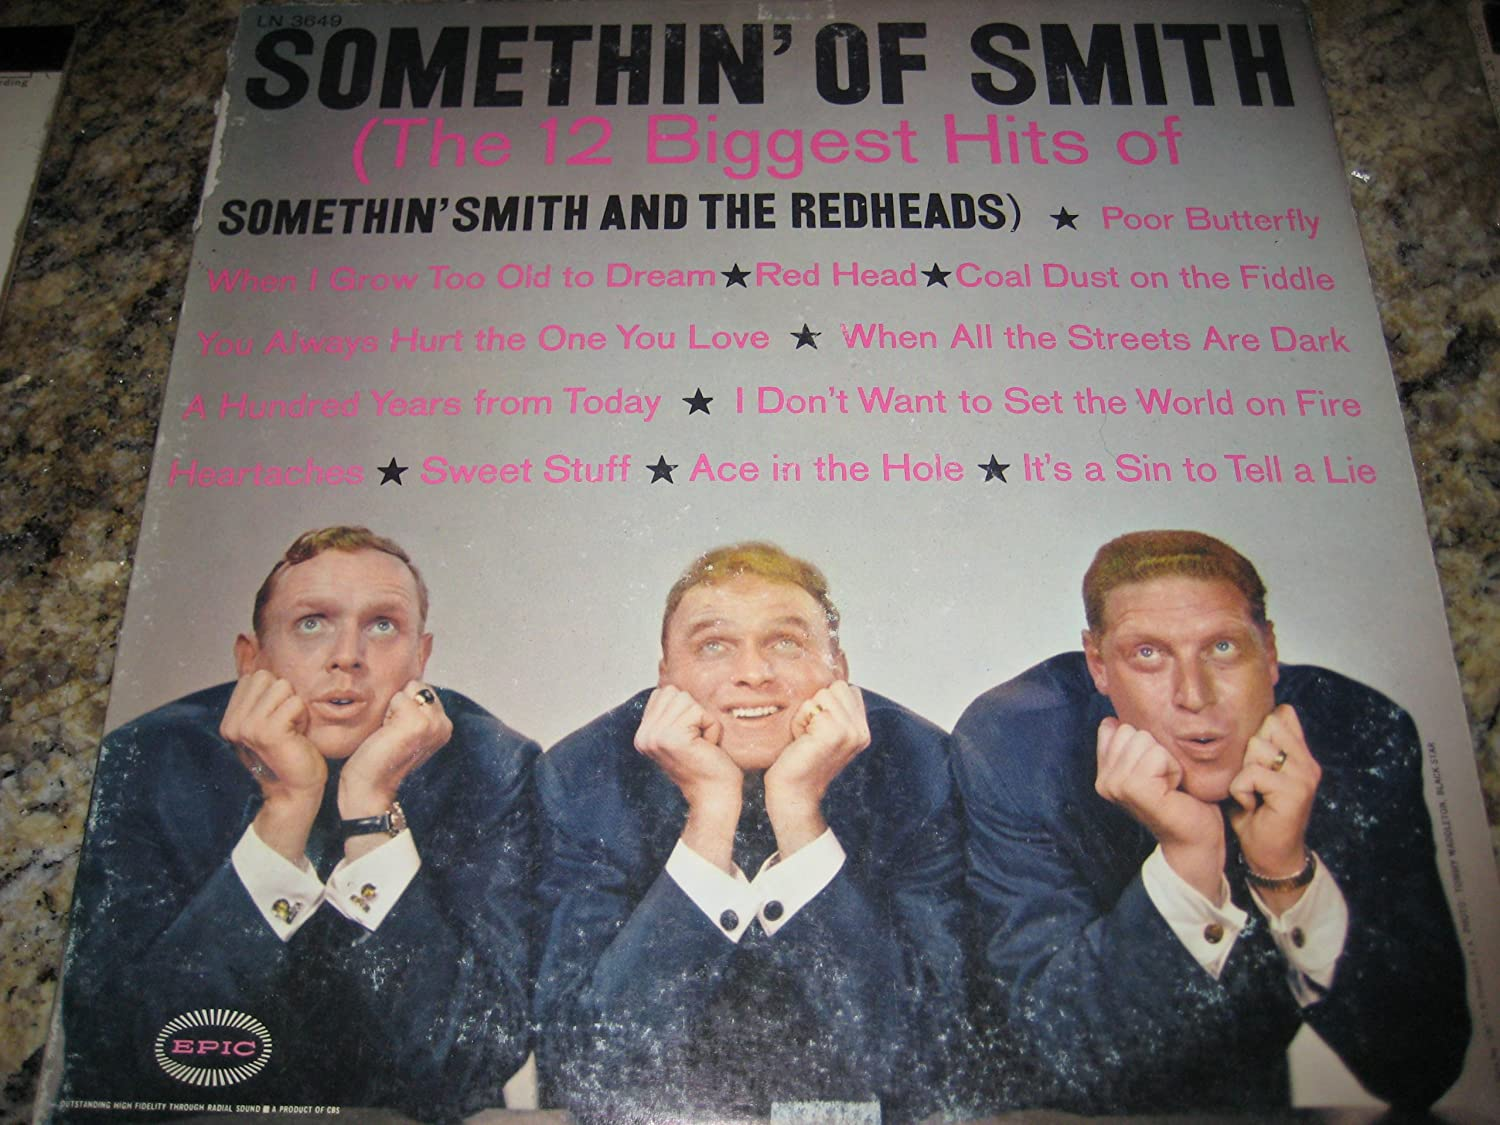 Somethin Smith, Somethin Smith and the Redheads - Somethin' of Smith: 12  Biggest Hits of Somethin' Smith and the Redheads - Amazon.com Music